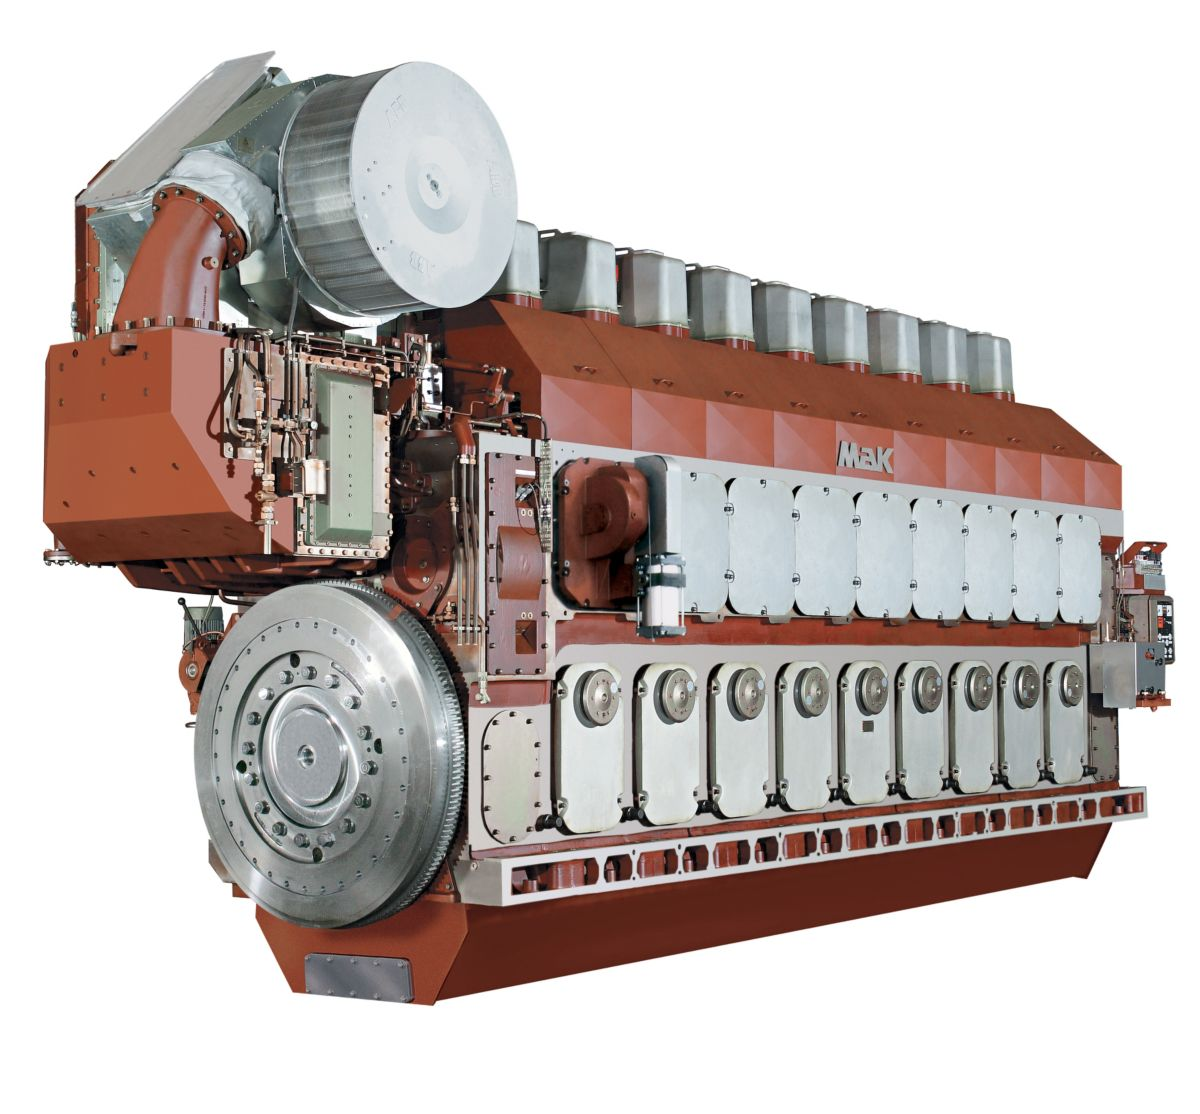 M 43 C Propulsion Engine